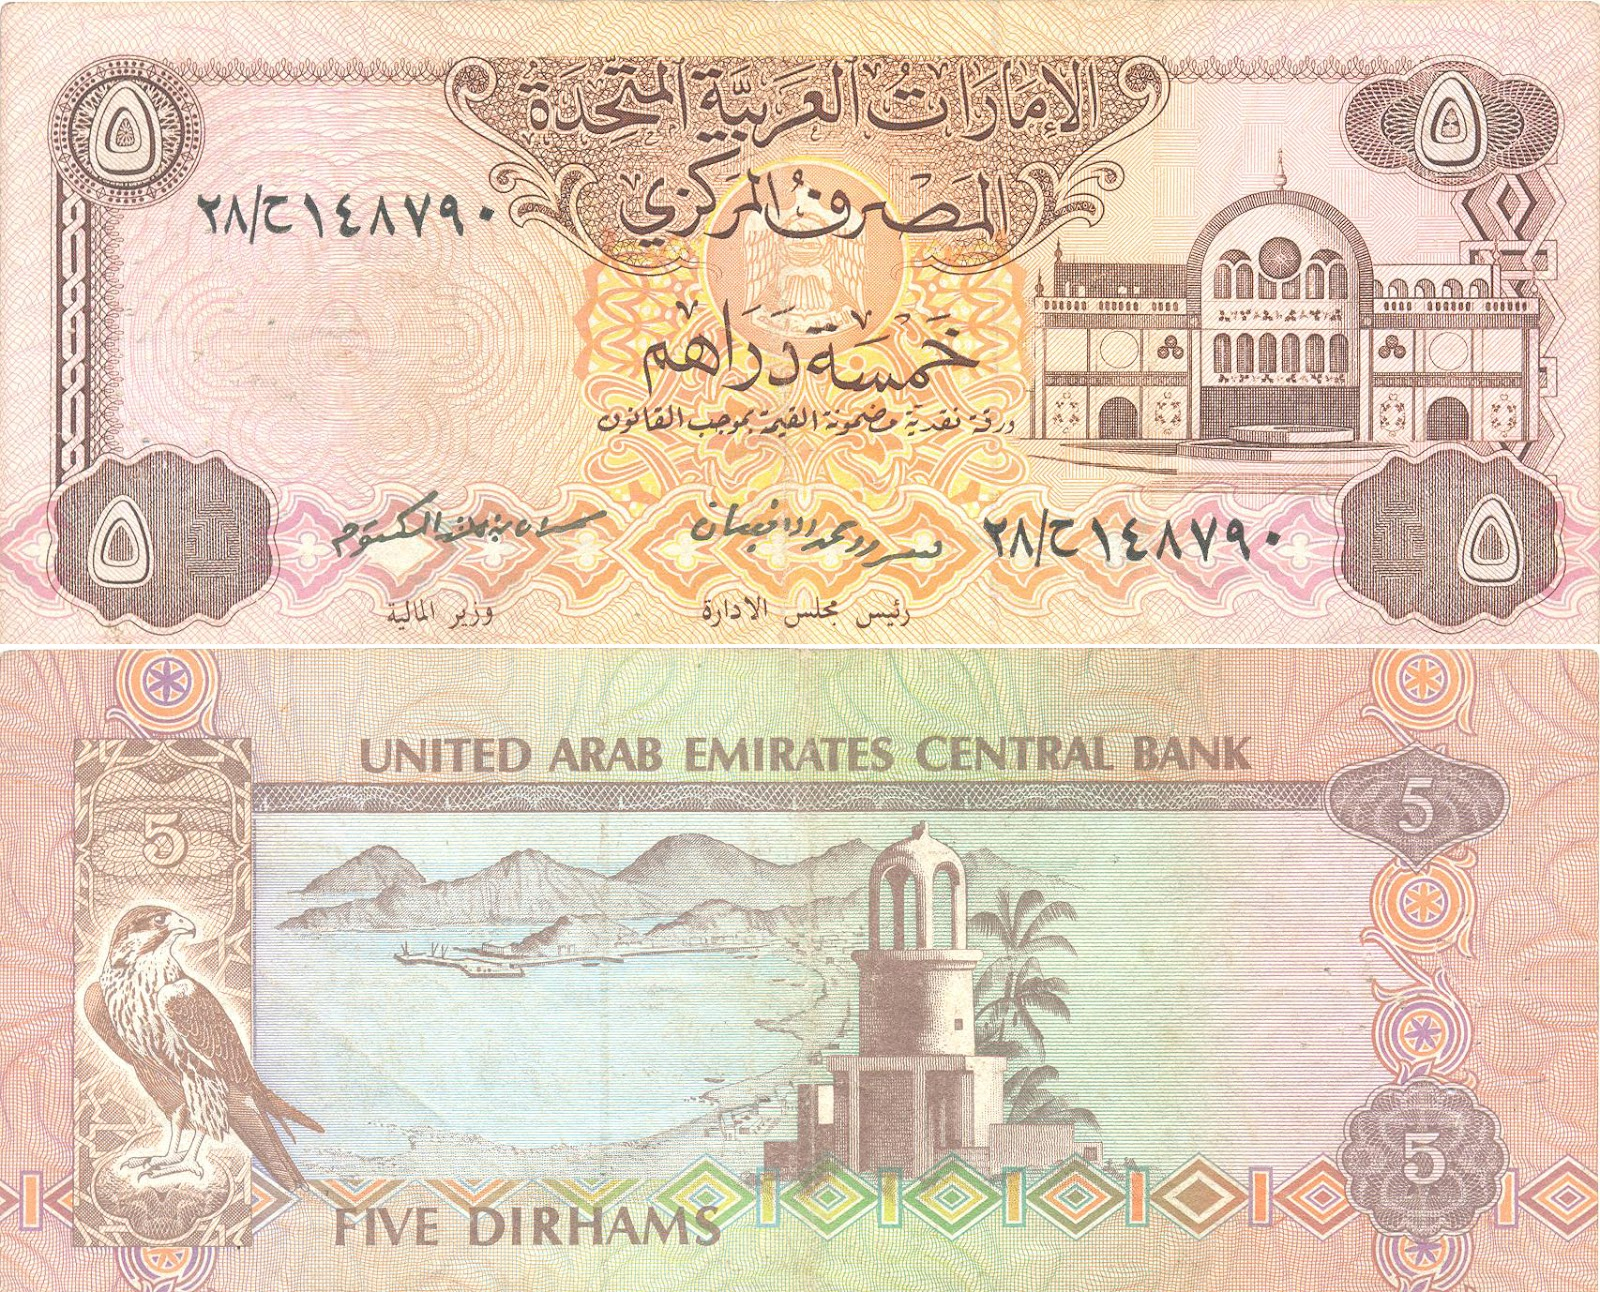 United States Dollar(USD) To UAE Dirham(AED) Exchange Rates Today